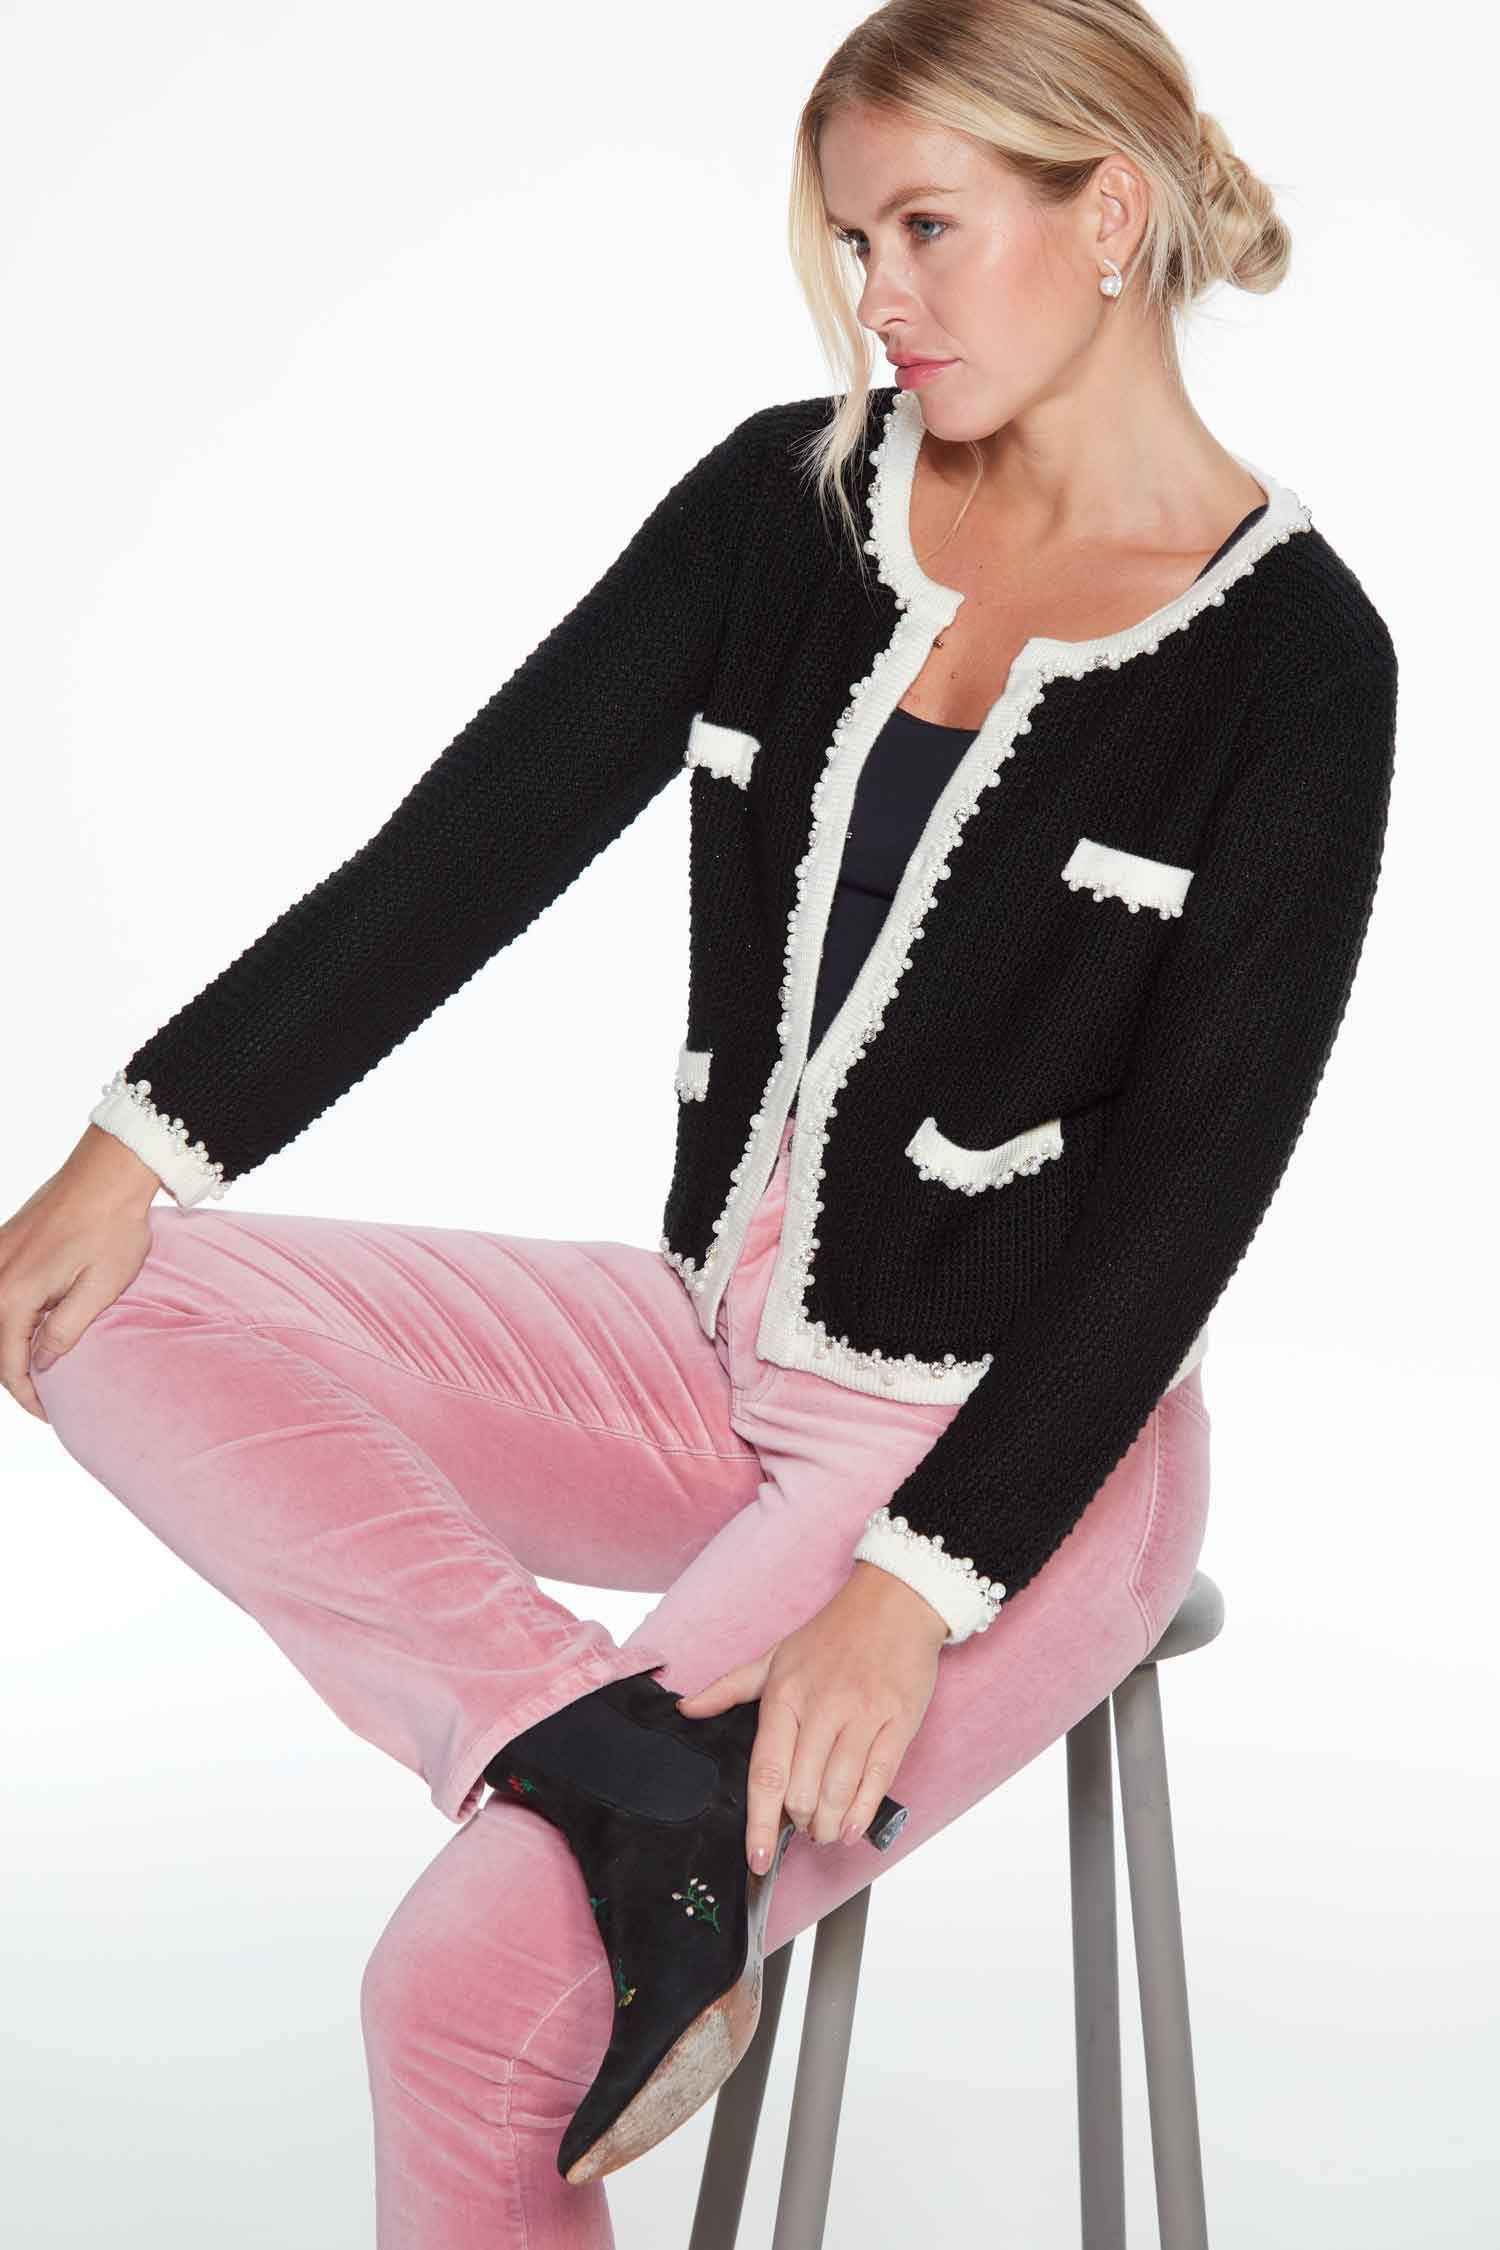 Annie Black French-style Knitted Jacket Large